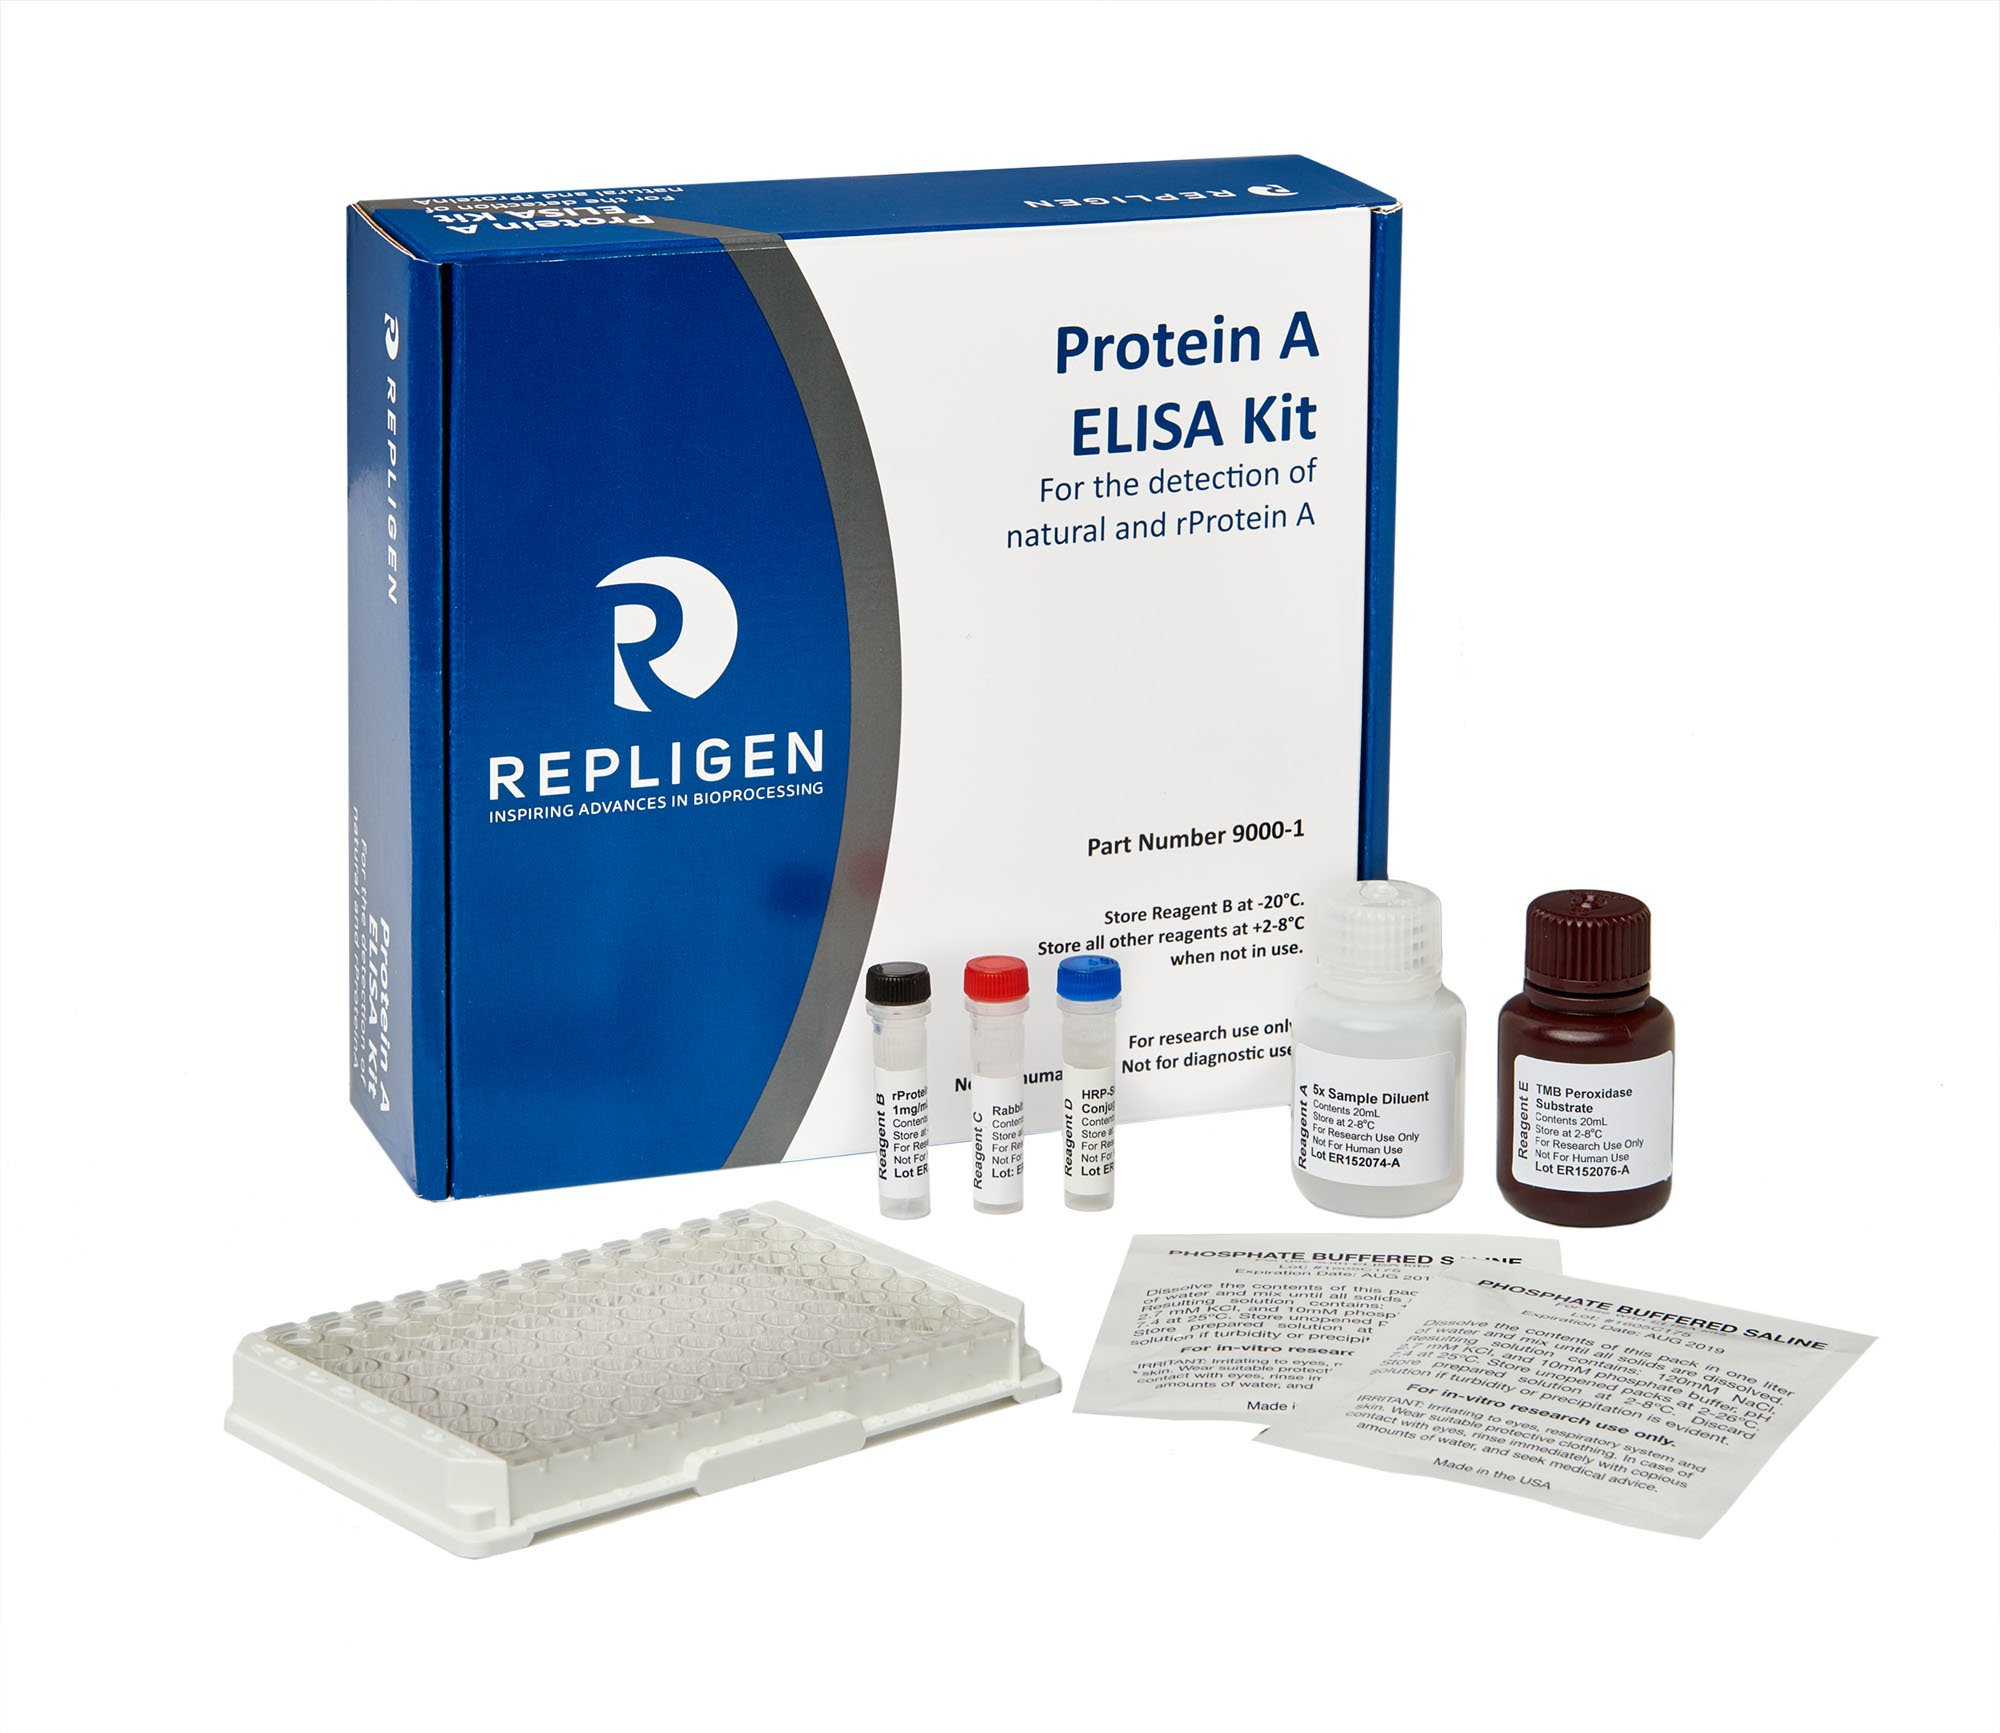 Protein A ELISA Kit for Native and Recombinant Protein A